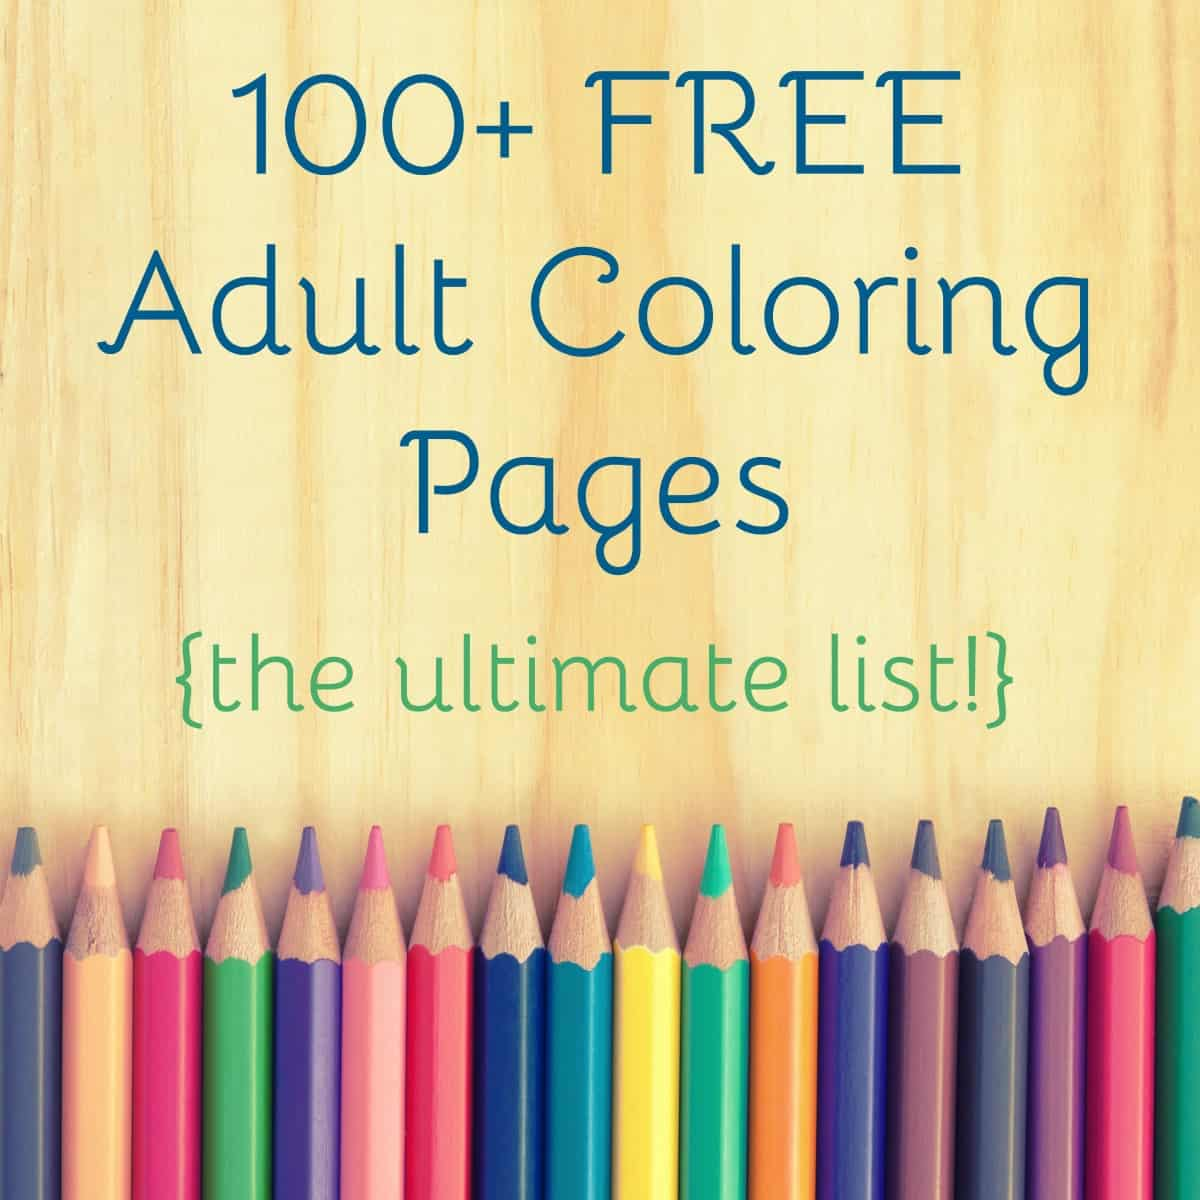 Get Links To Over 100 Free Coloring Pages Youll Love These Favorites Including